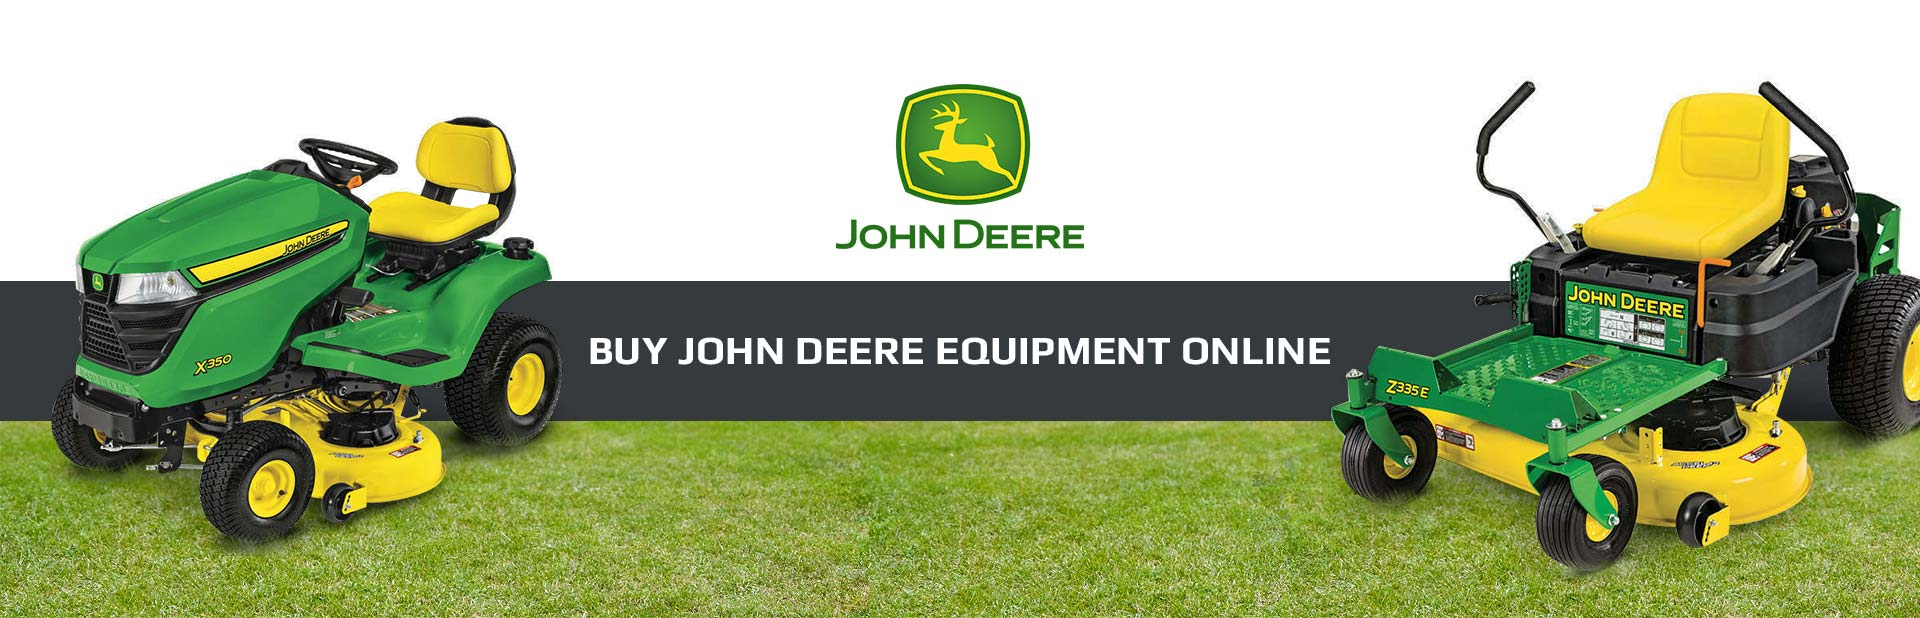 Buy John Deere equipment online!